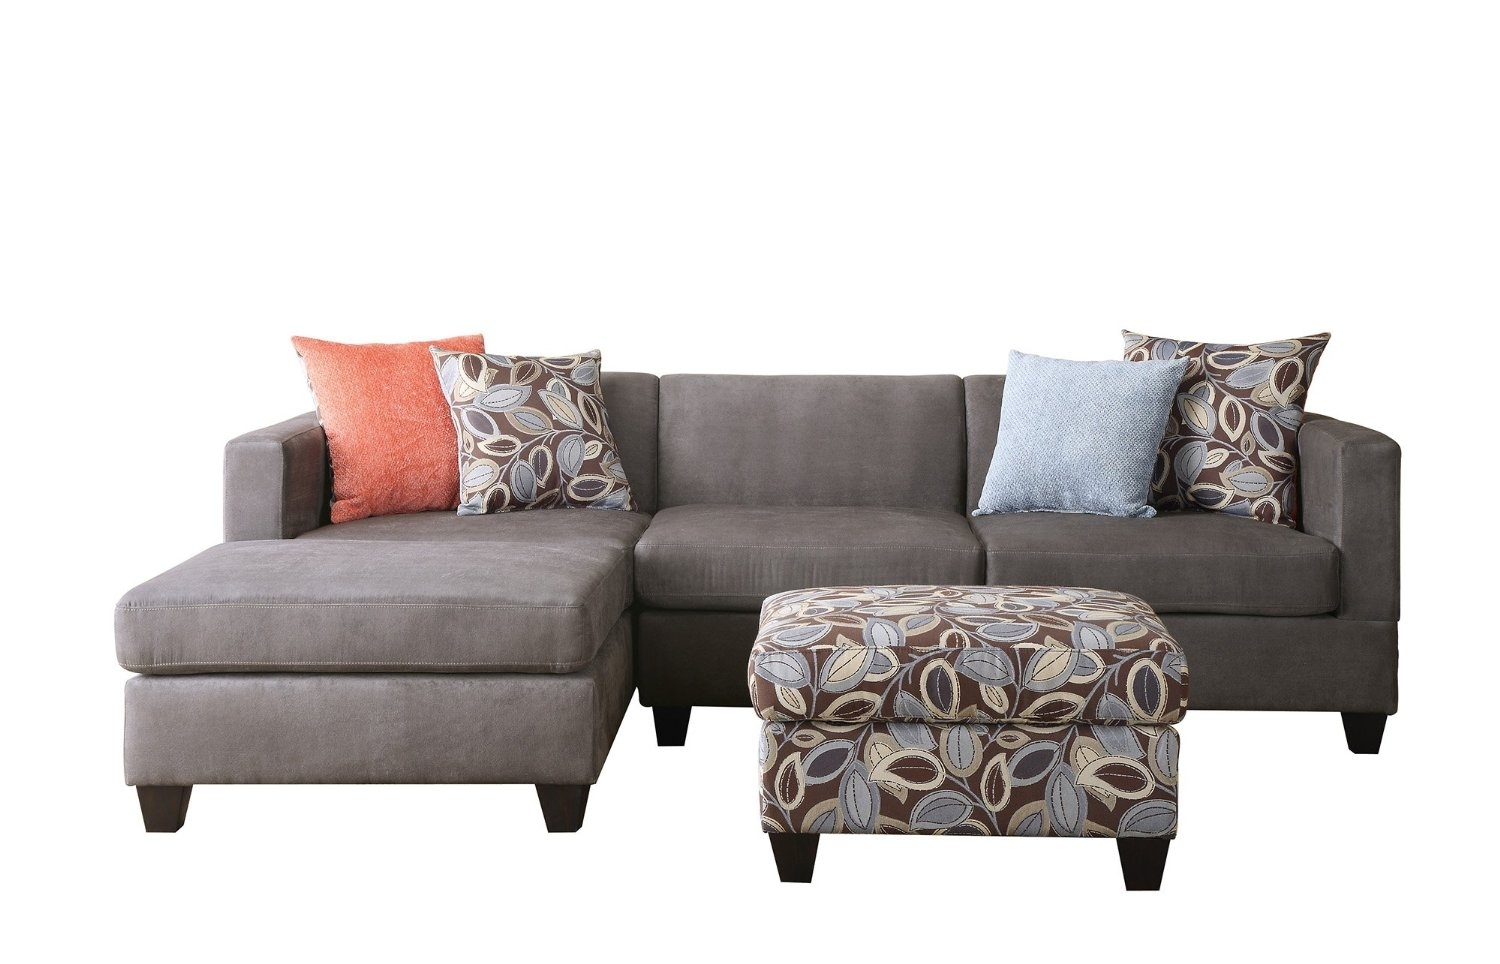 What To Know Before Buying A 3 Piece Sectional Sofa – Elites Home Decor With Regard To Cosmos Grey 2 Piece Sectionals With Laf Chaise (View 24 of 25)